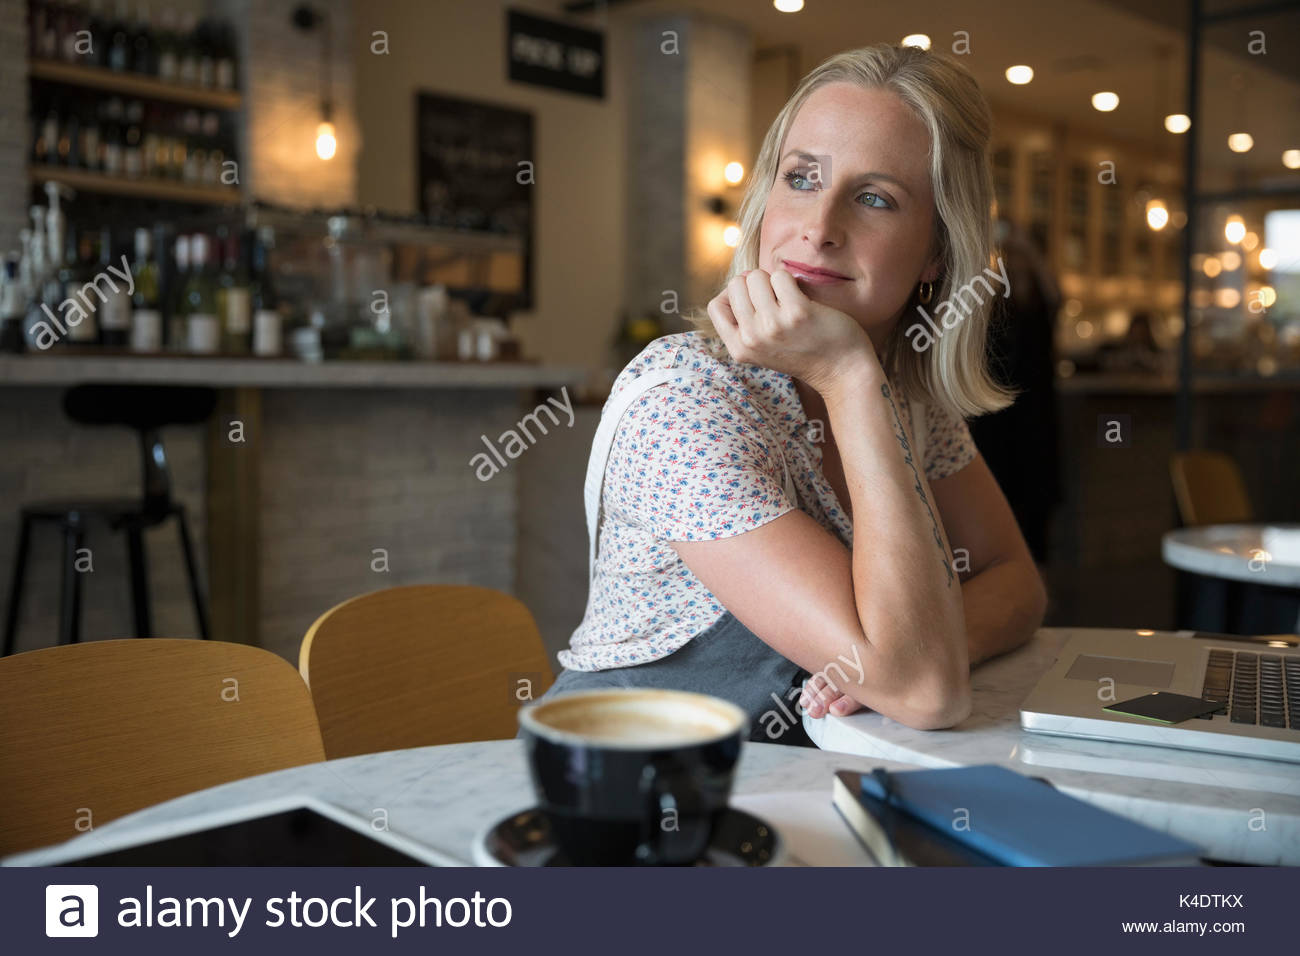 Smiling pensive woman using laptop, looking over shoulder in cafe - Stock Image